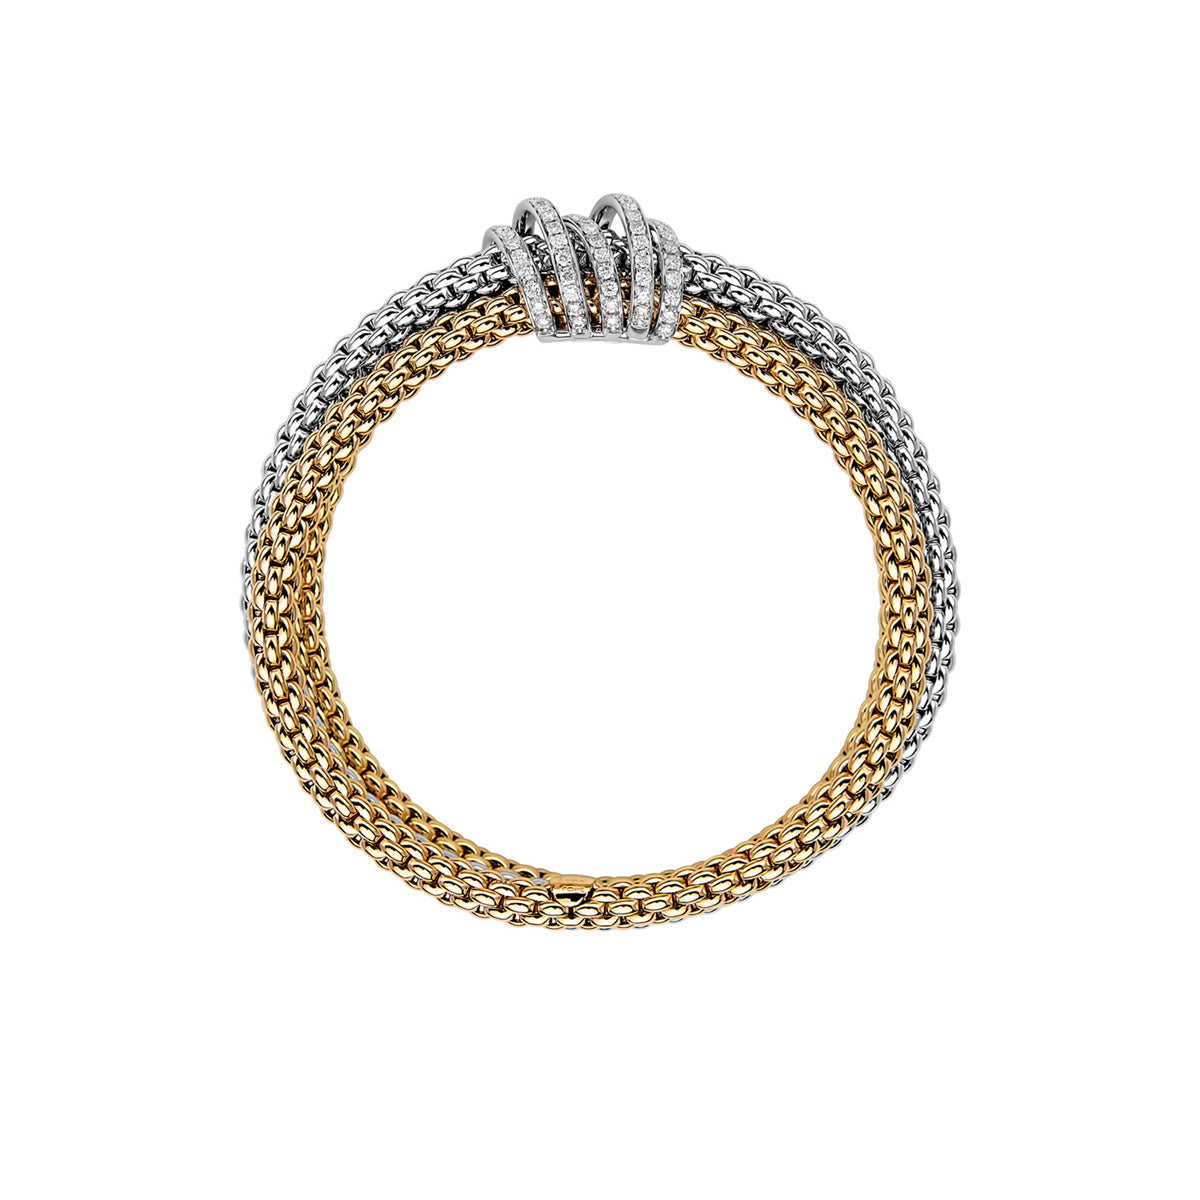 Fope Mialuce Bracelet in Yellow and White Gold-Hamilton & Inches